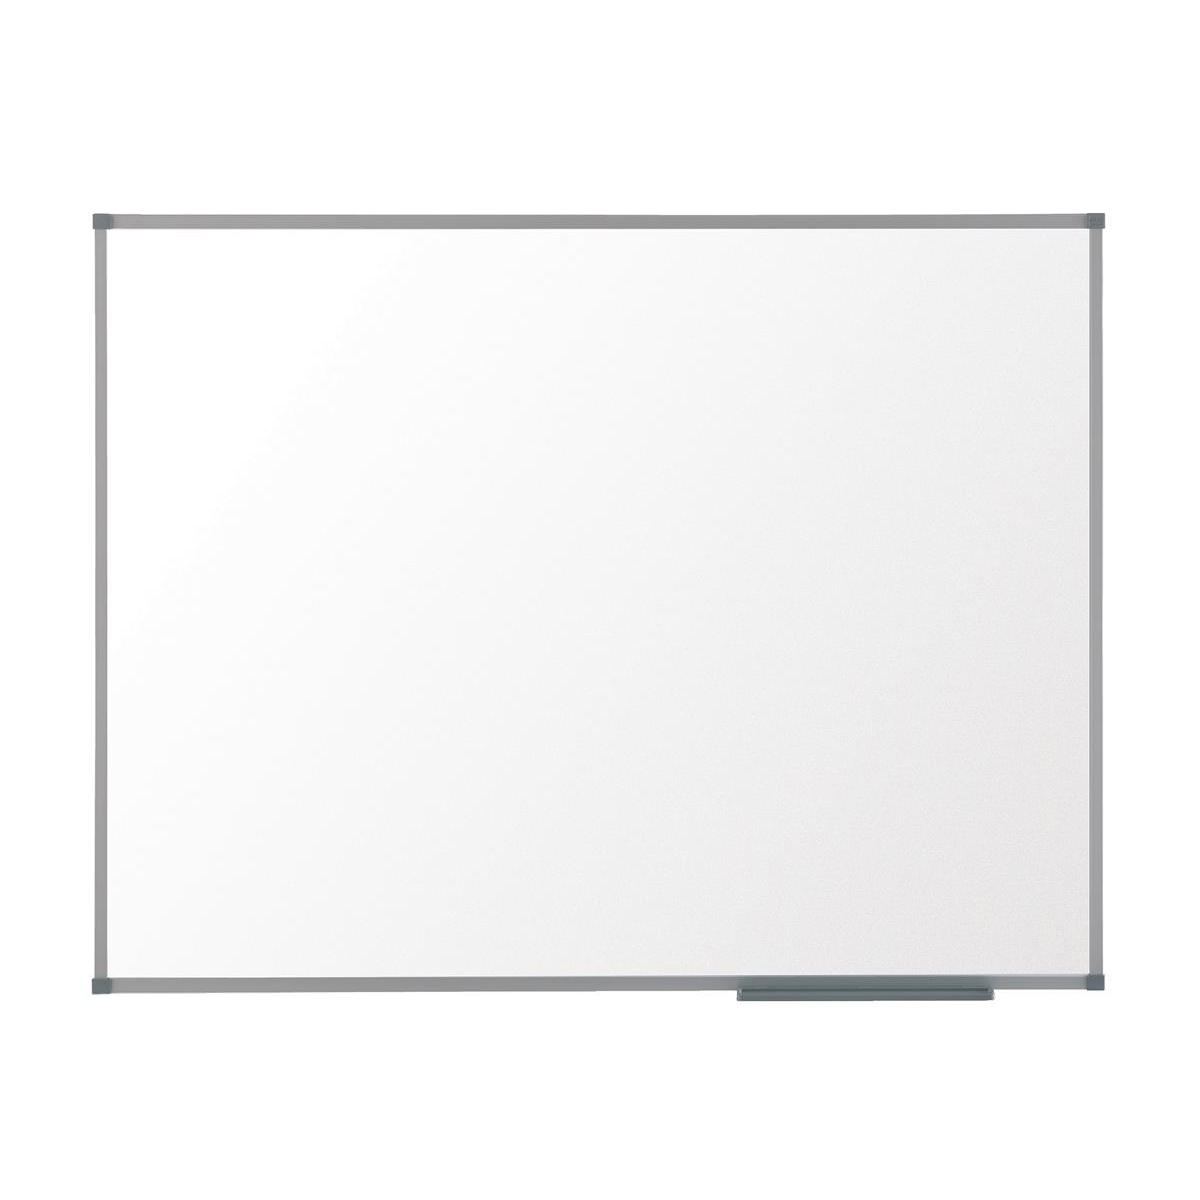 Nobo Basic Steel Whiteboard Magnetic Fixings Included W1500xH1000mm White/Silver Ref 1905212